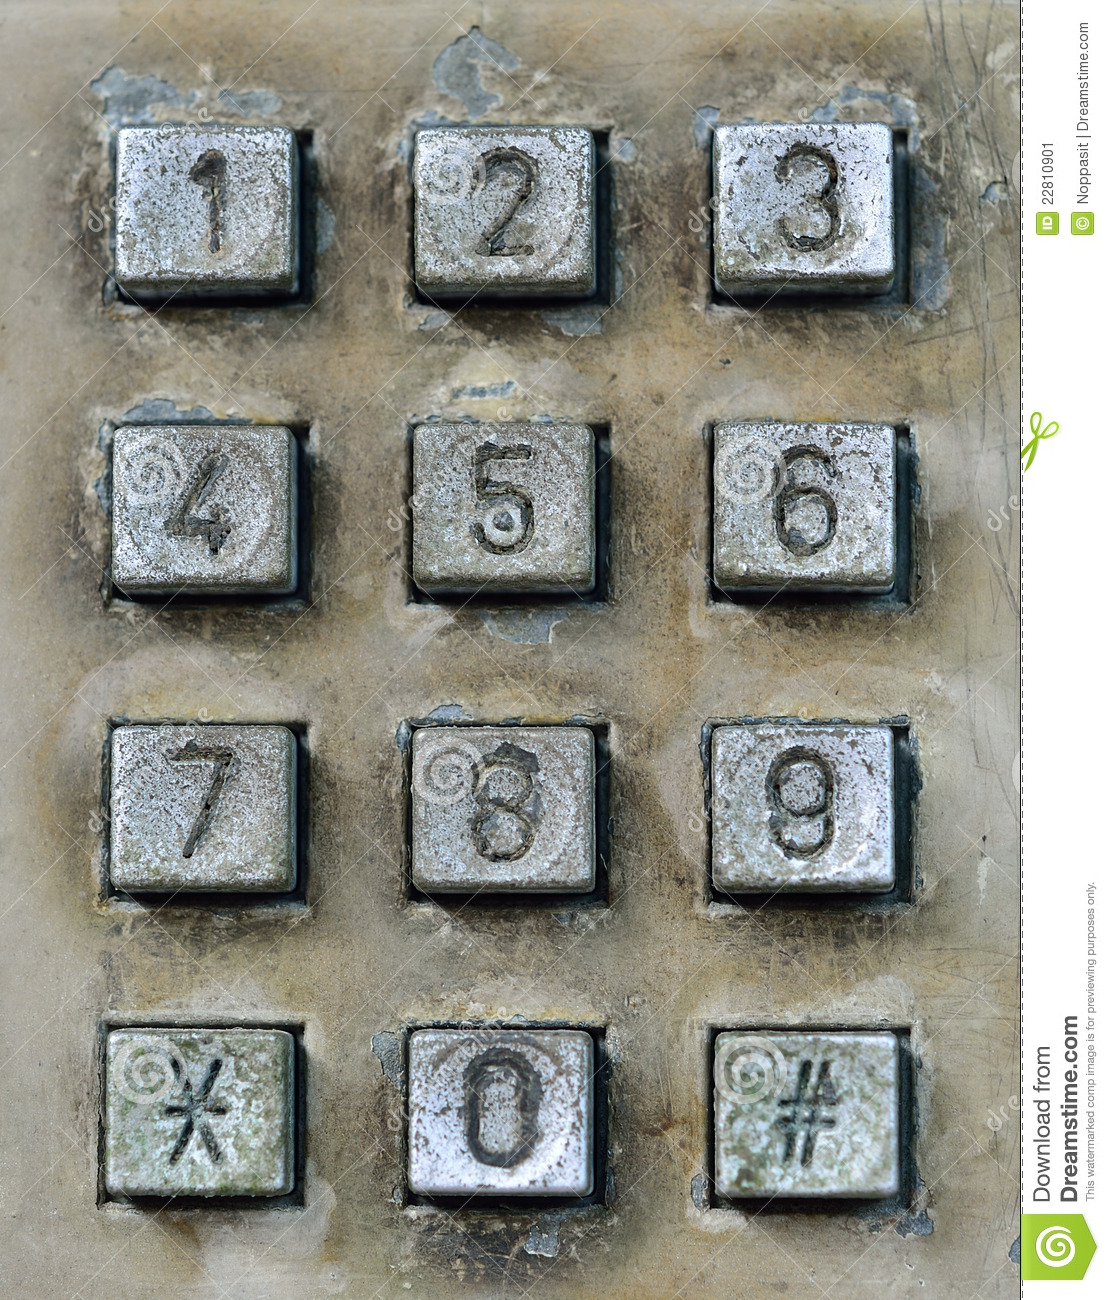 Dial Pad Of Public Telephone Box Stock Image - Image: 22810901